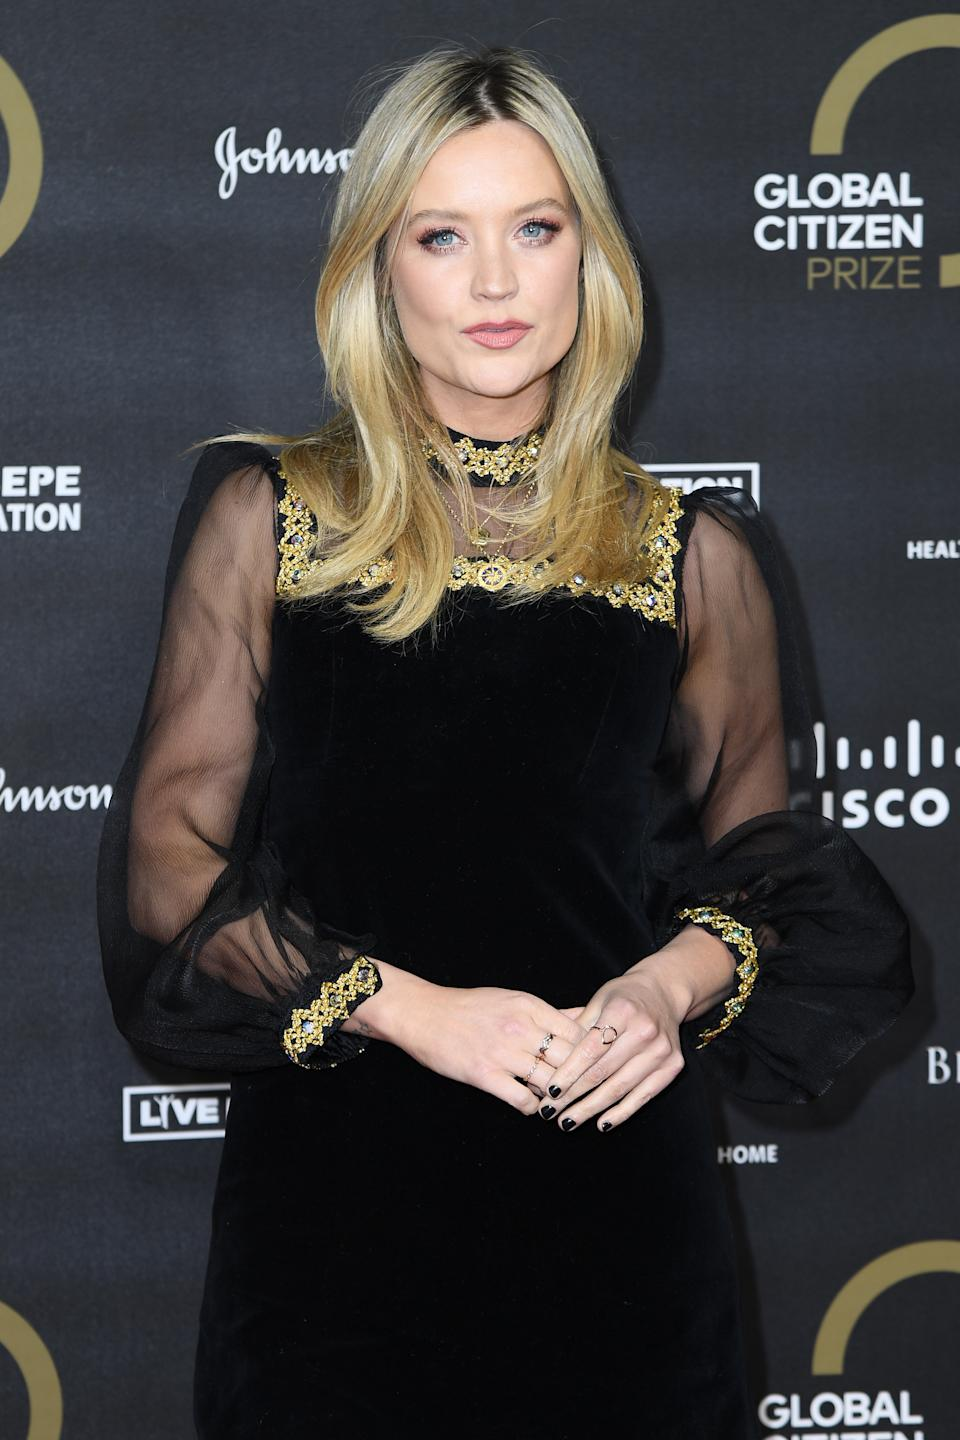 LONDON, ENGLAND - DECEMBER 13: Laura Whitmore attends the Global Citizen Prize 2019 at Royal Albert Hall on December 13, 2019 in London, England. (Photo by Gareth Cattermole/Getty Images)